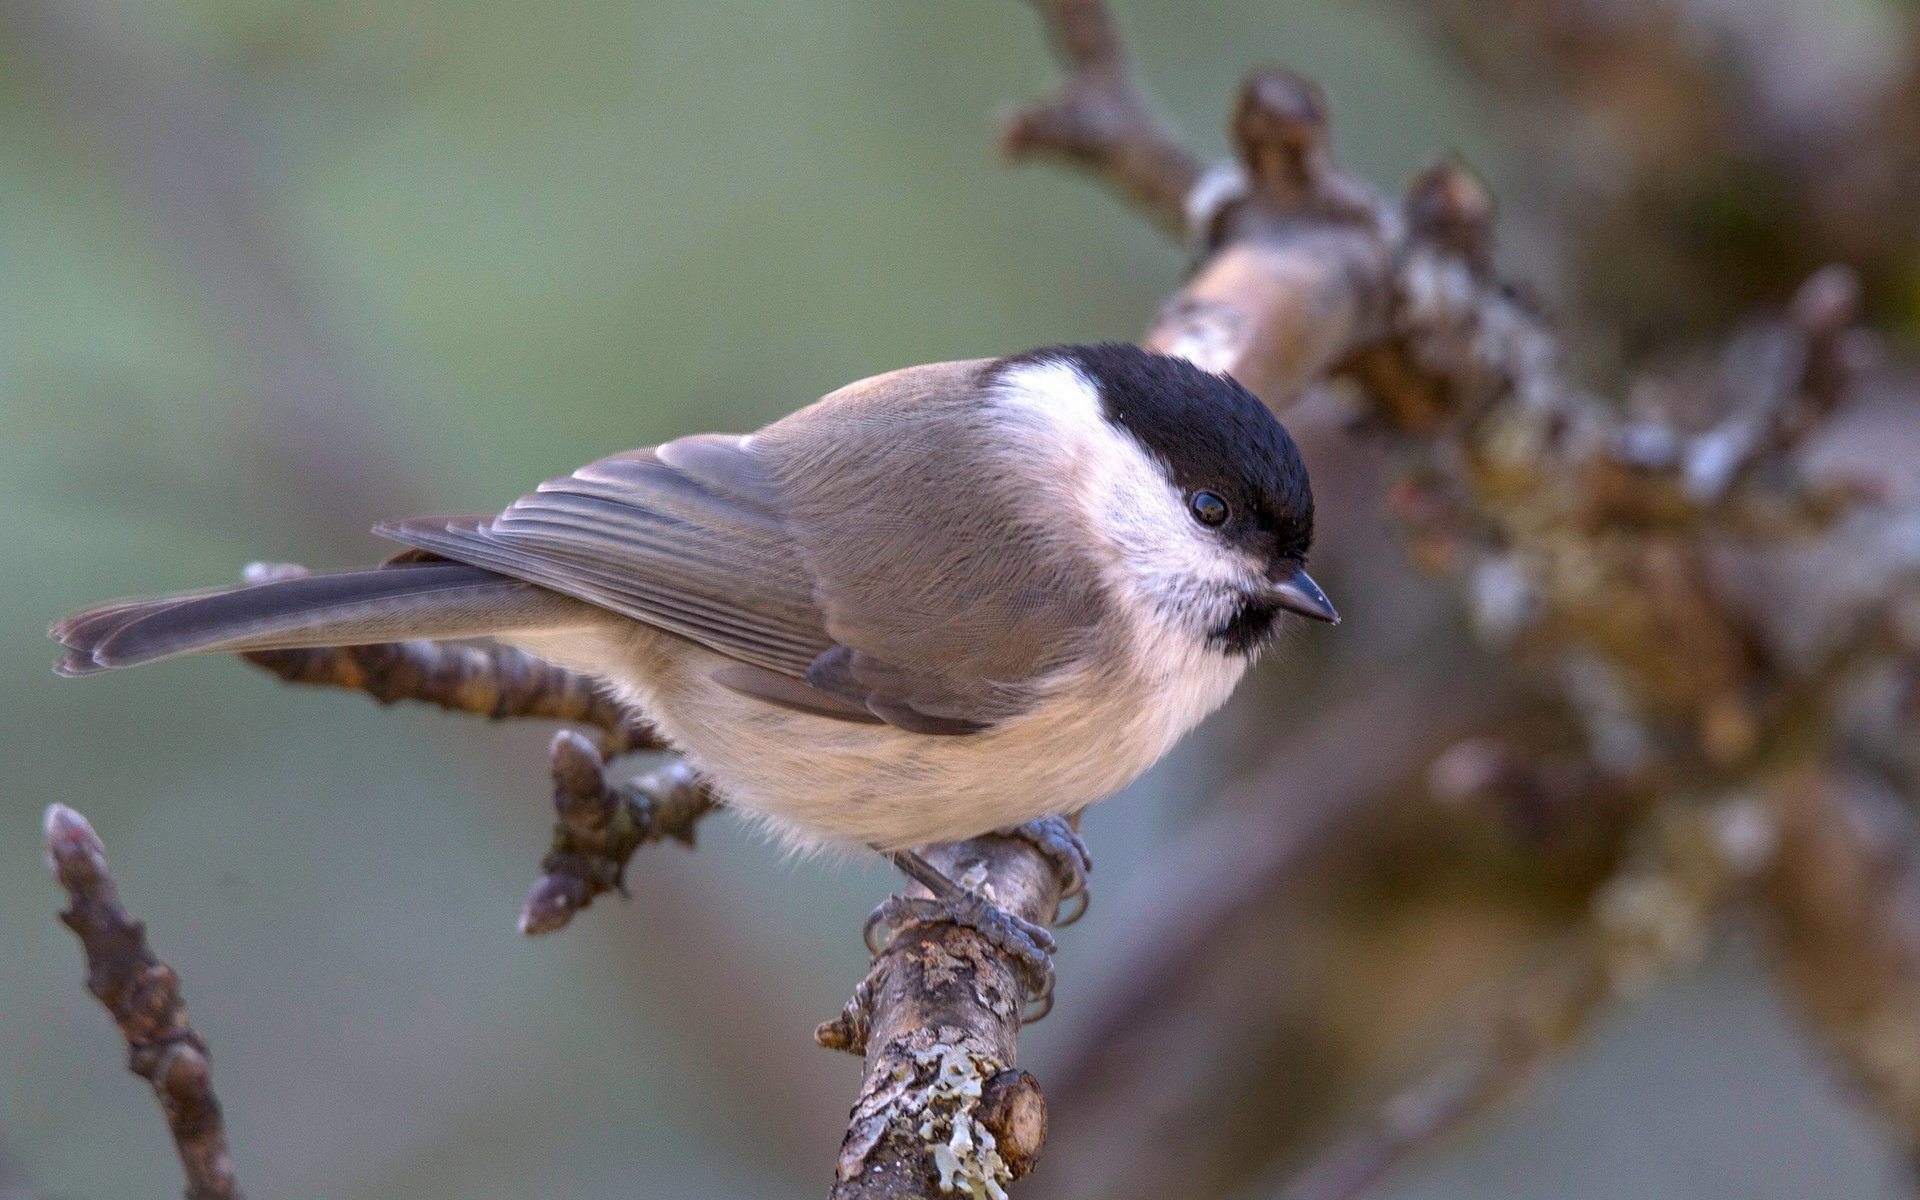 Willow Tit Hd Wallpaper  Background Image  1920X1200 -6875